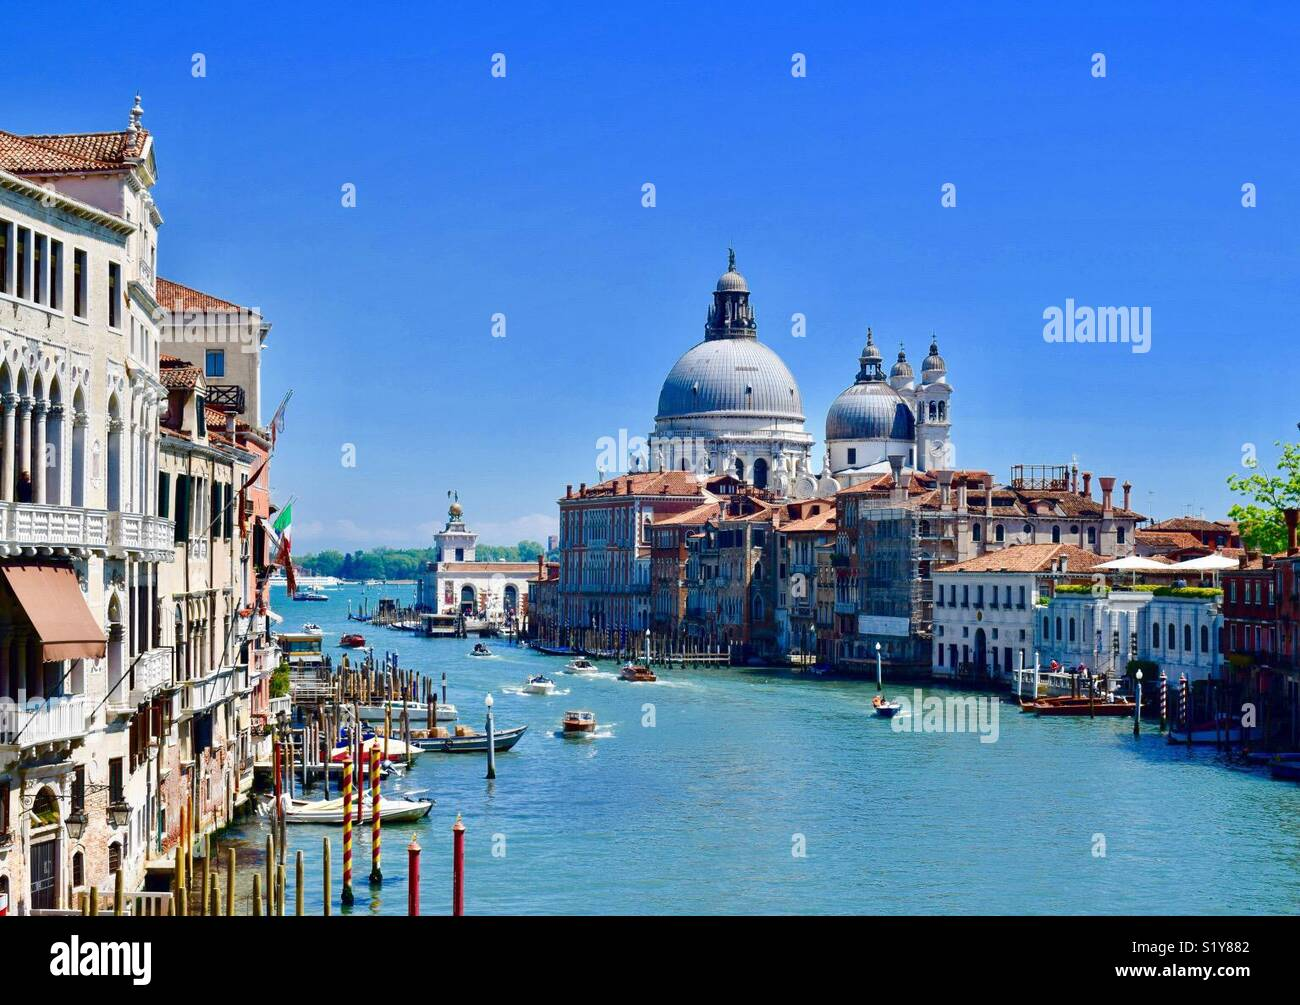 View of the Grand Canal and Santa Maria Della Salute from the Academia Bridge - Stock Image